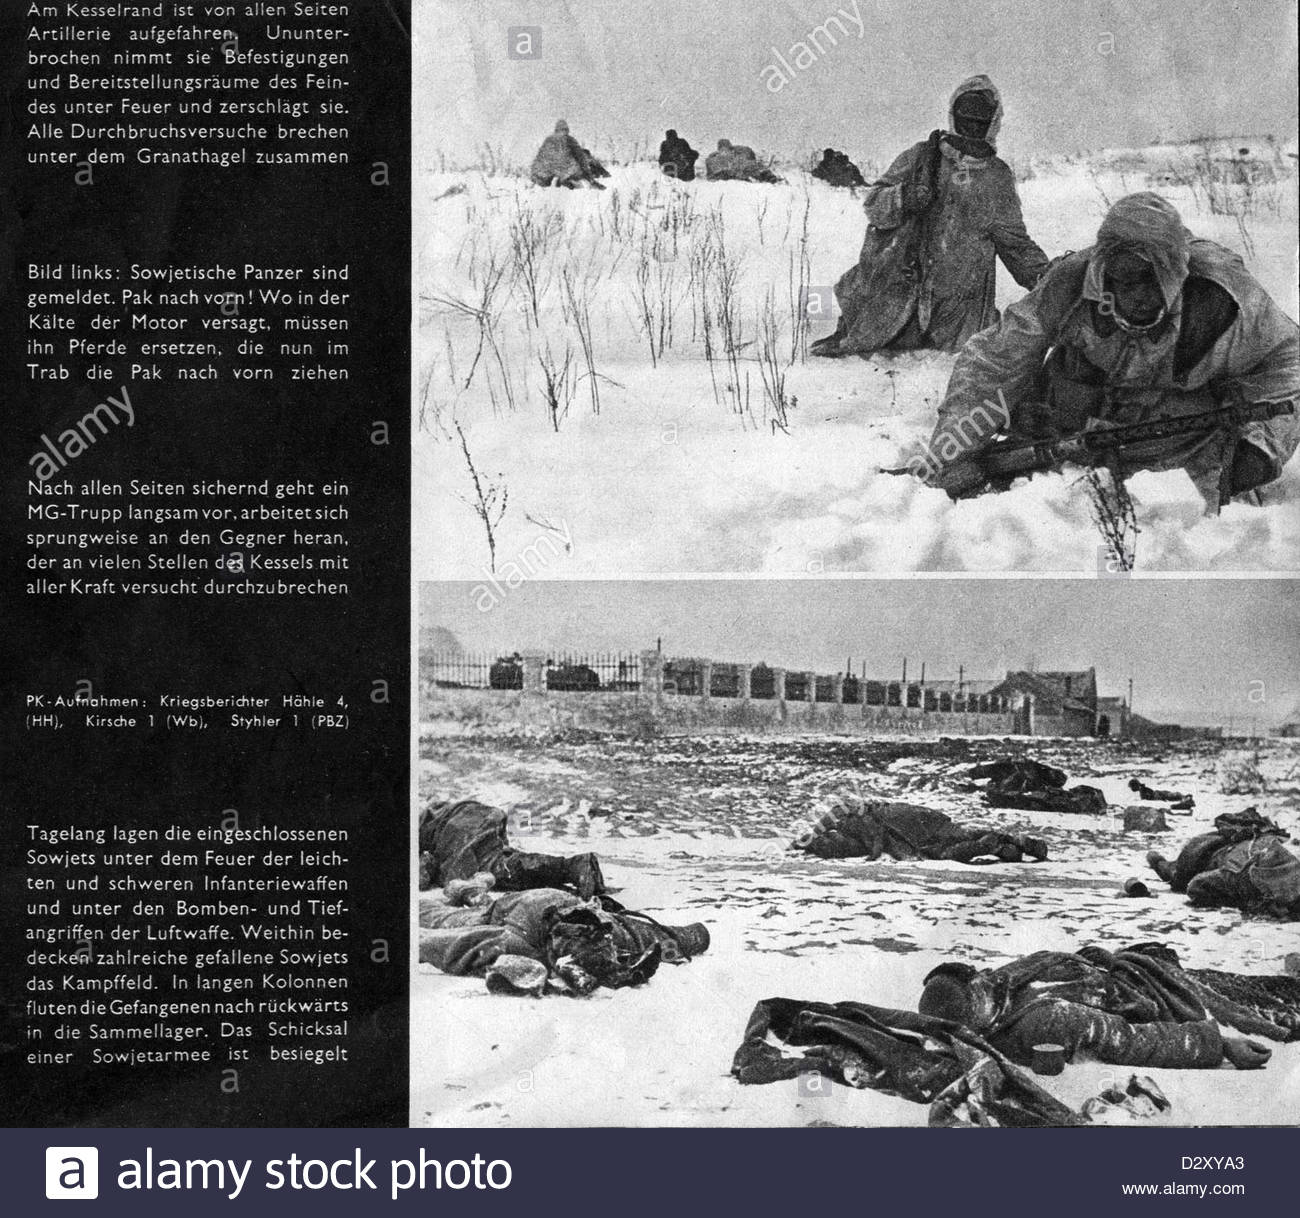 Russian Front In  From Nazi Propaganda Wartime Newspaper Stock Russian Front In  From Nazi Propaganda Wartime Newspaper Operation DXYA Stock Photo Russian Front In  From Nazi Propaganda Wartime Newspaper Operation